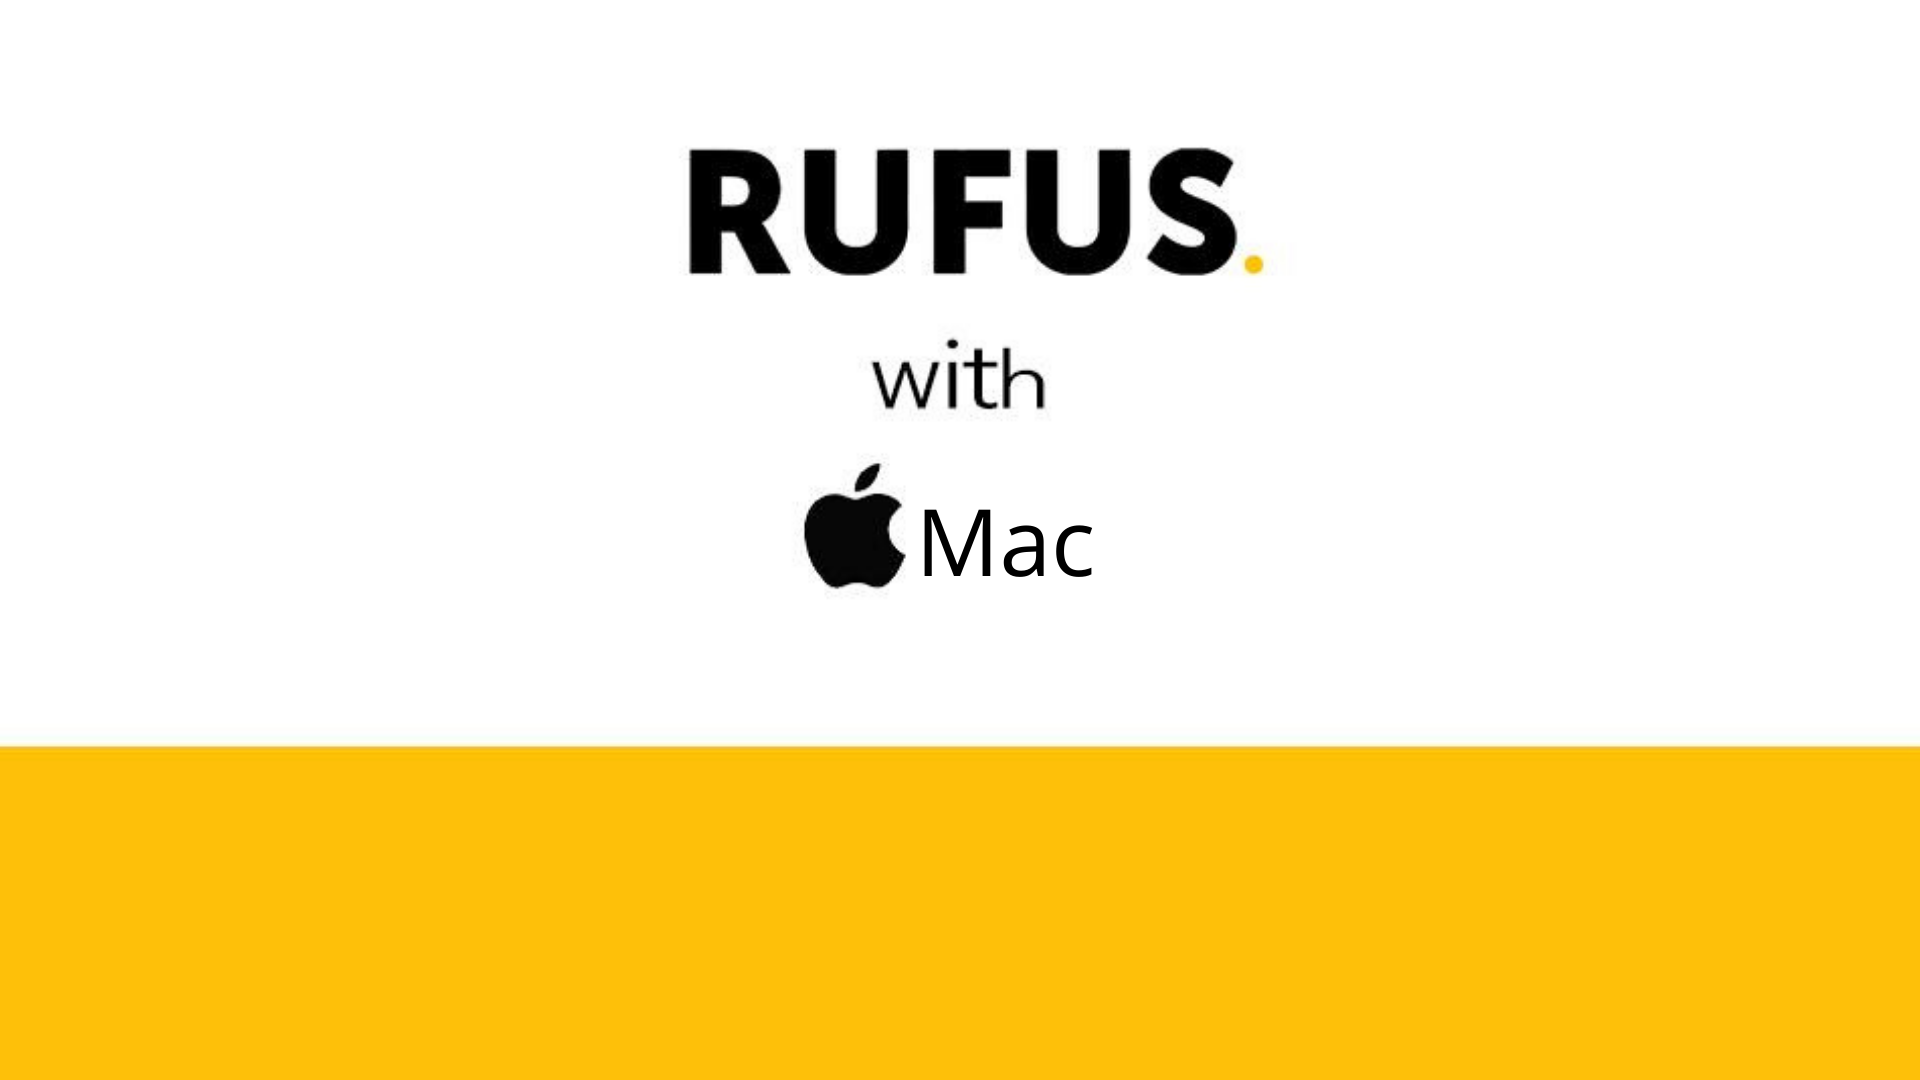 Important features of the Rufus computer program